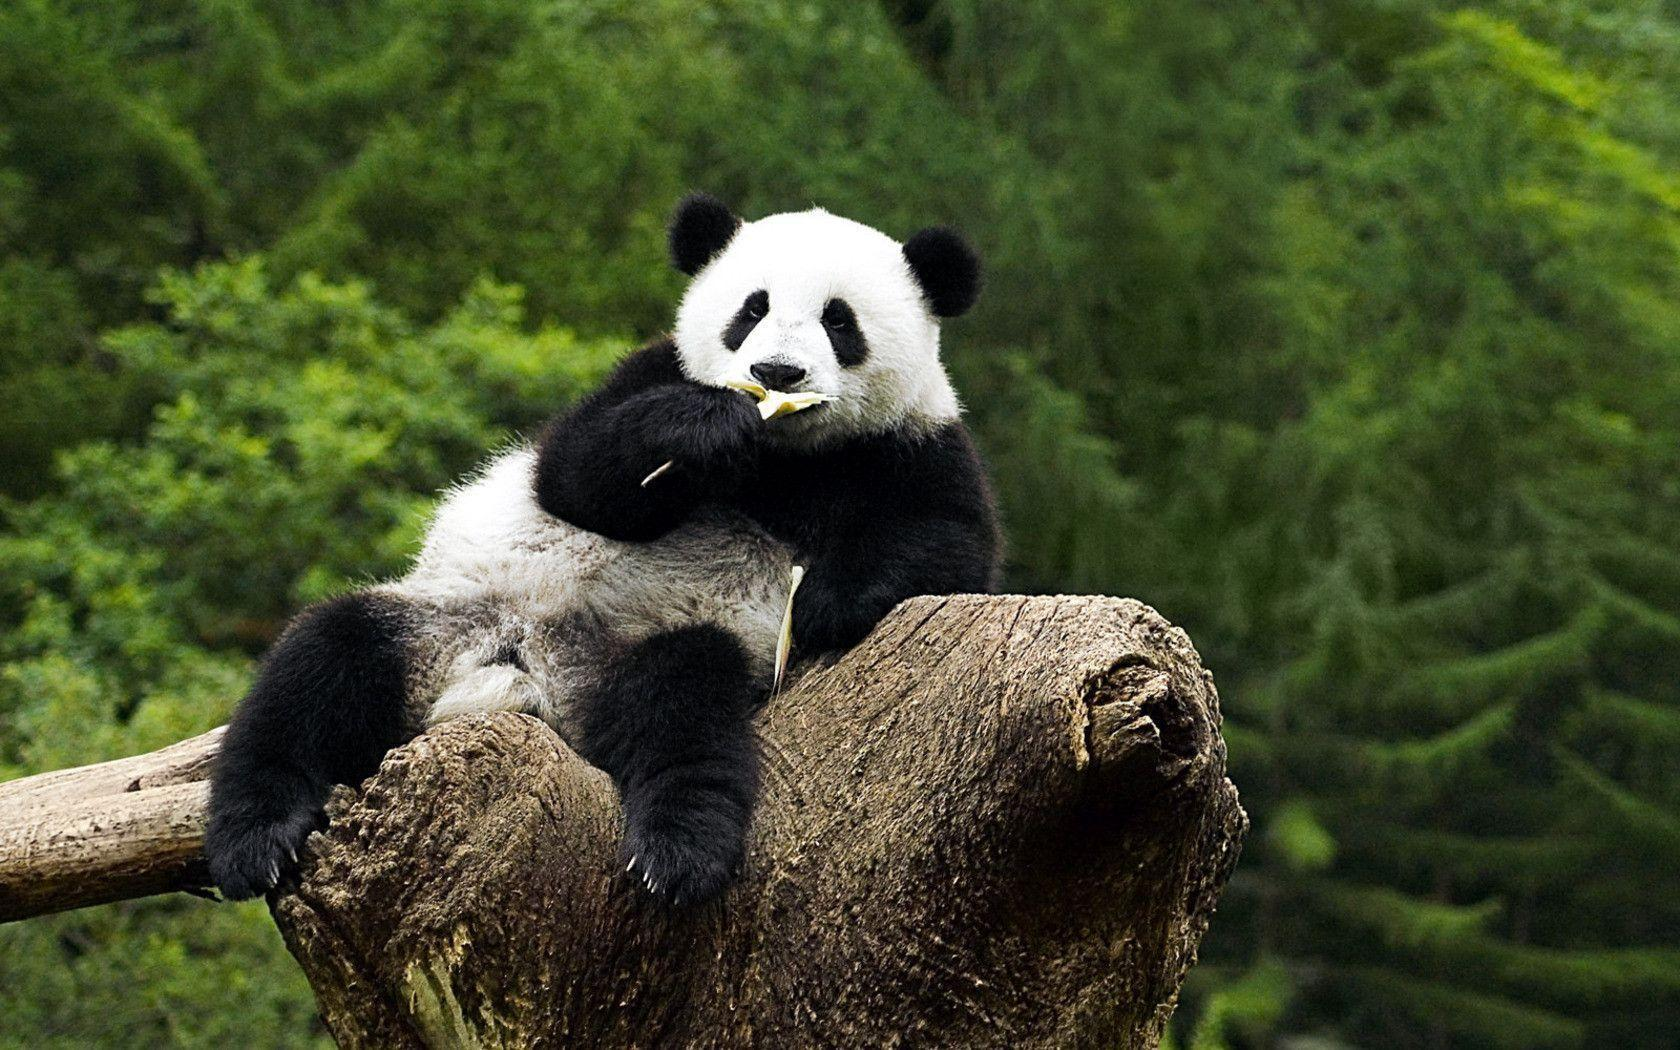 Panda Bear Wallpaper Images & Pictures - Becuo